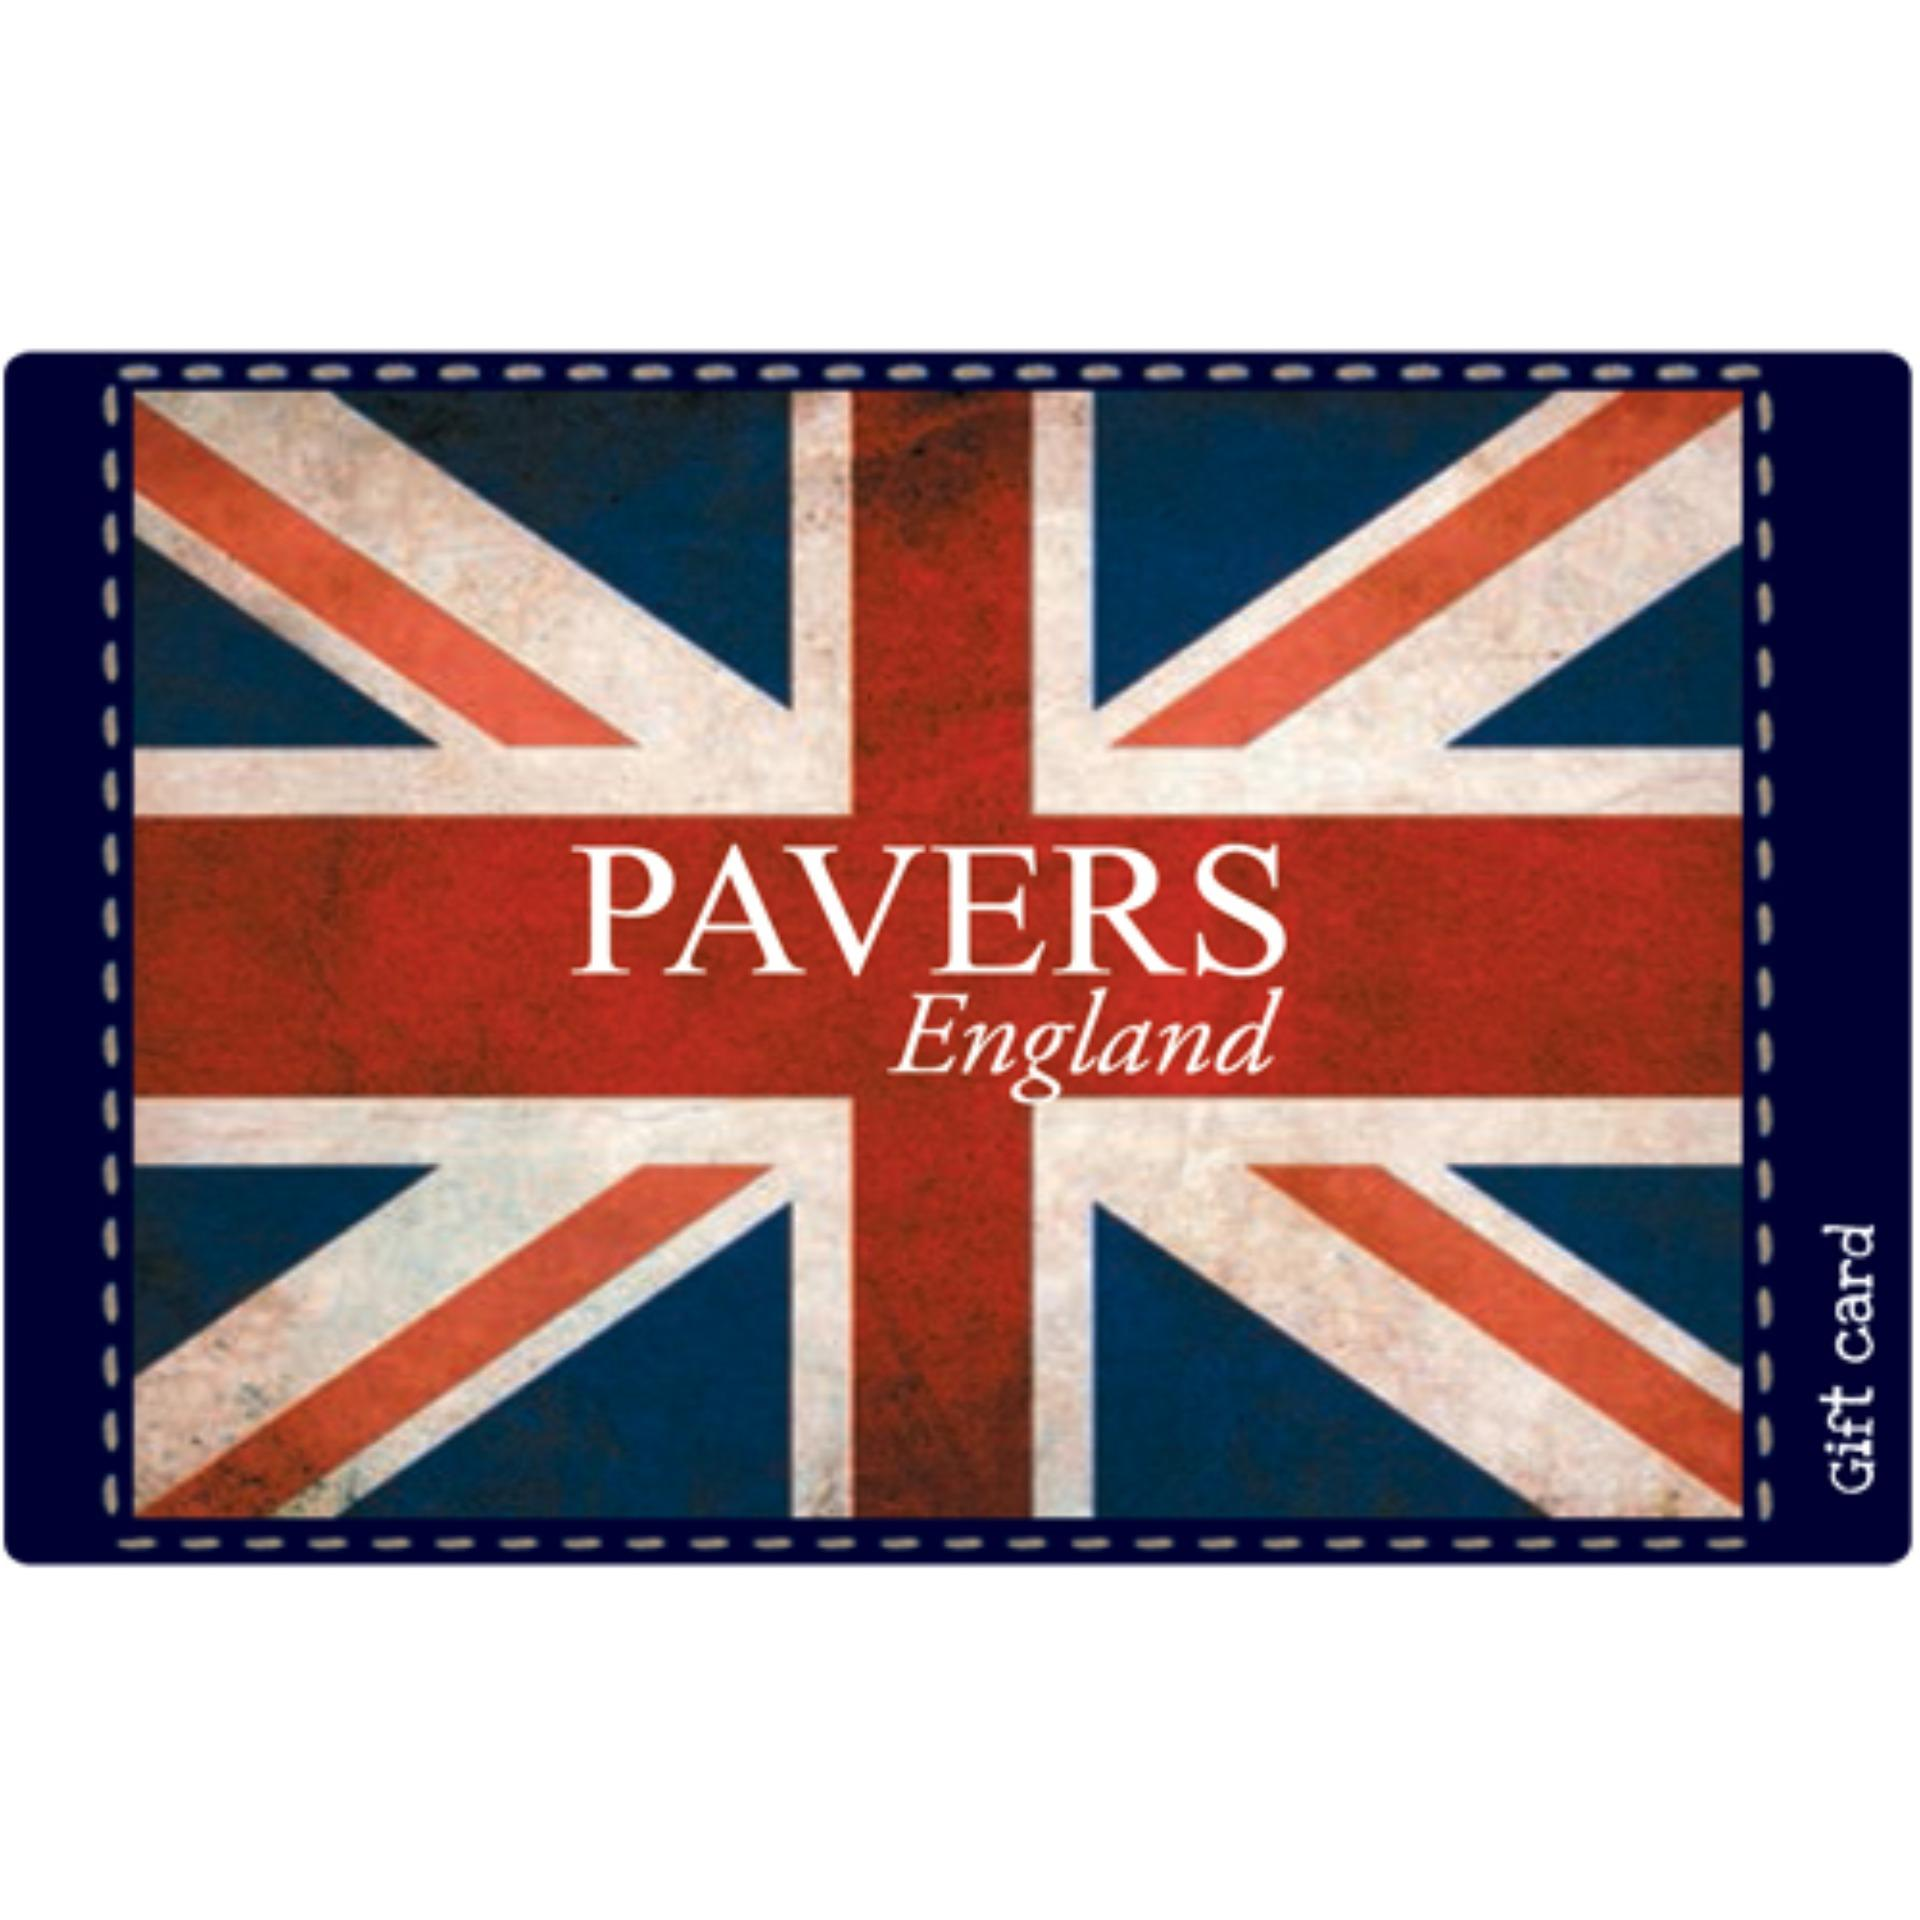 Pavers England Digital Gift Cards: Rs. 4005 By Qwikcilver Store.